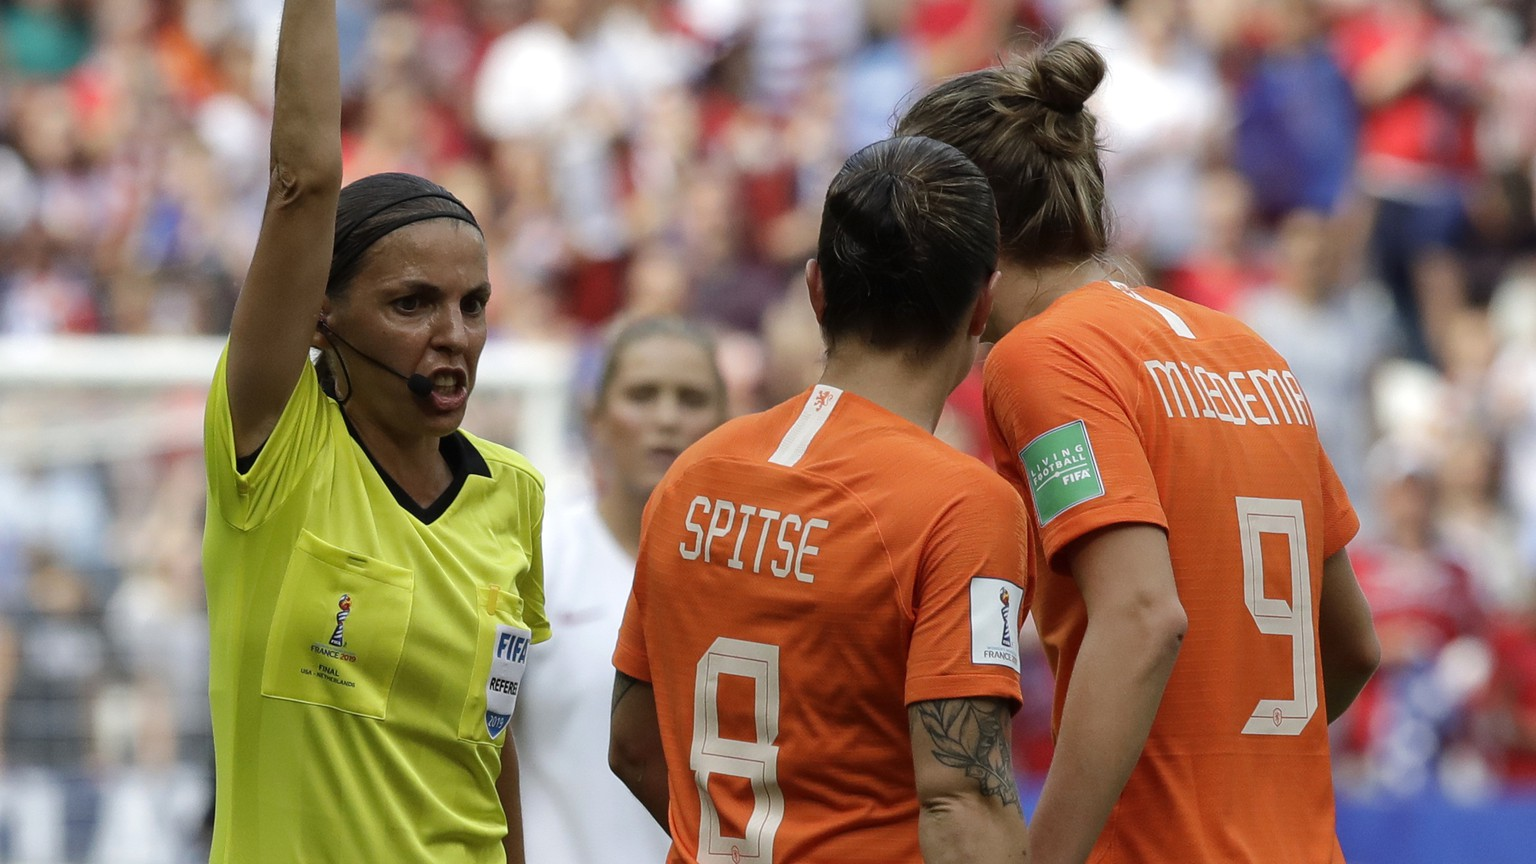 Netherlands' Vivianne Miedema, right, talks to French referee Stephanie Frappart, left, as she shows a yellow card to Netherlands' Sherida Spitse, center, during the Women's World Cup final soccer match between US and The Netherlands at the Stade de Lyon in Decines, outside Lyon, France, Sunday, July 7, 2019. (AP Photo/Alessandra Tarantino)